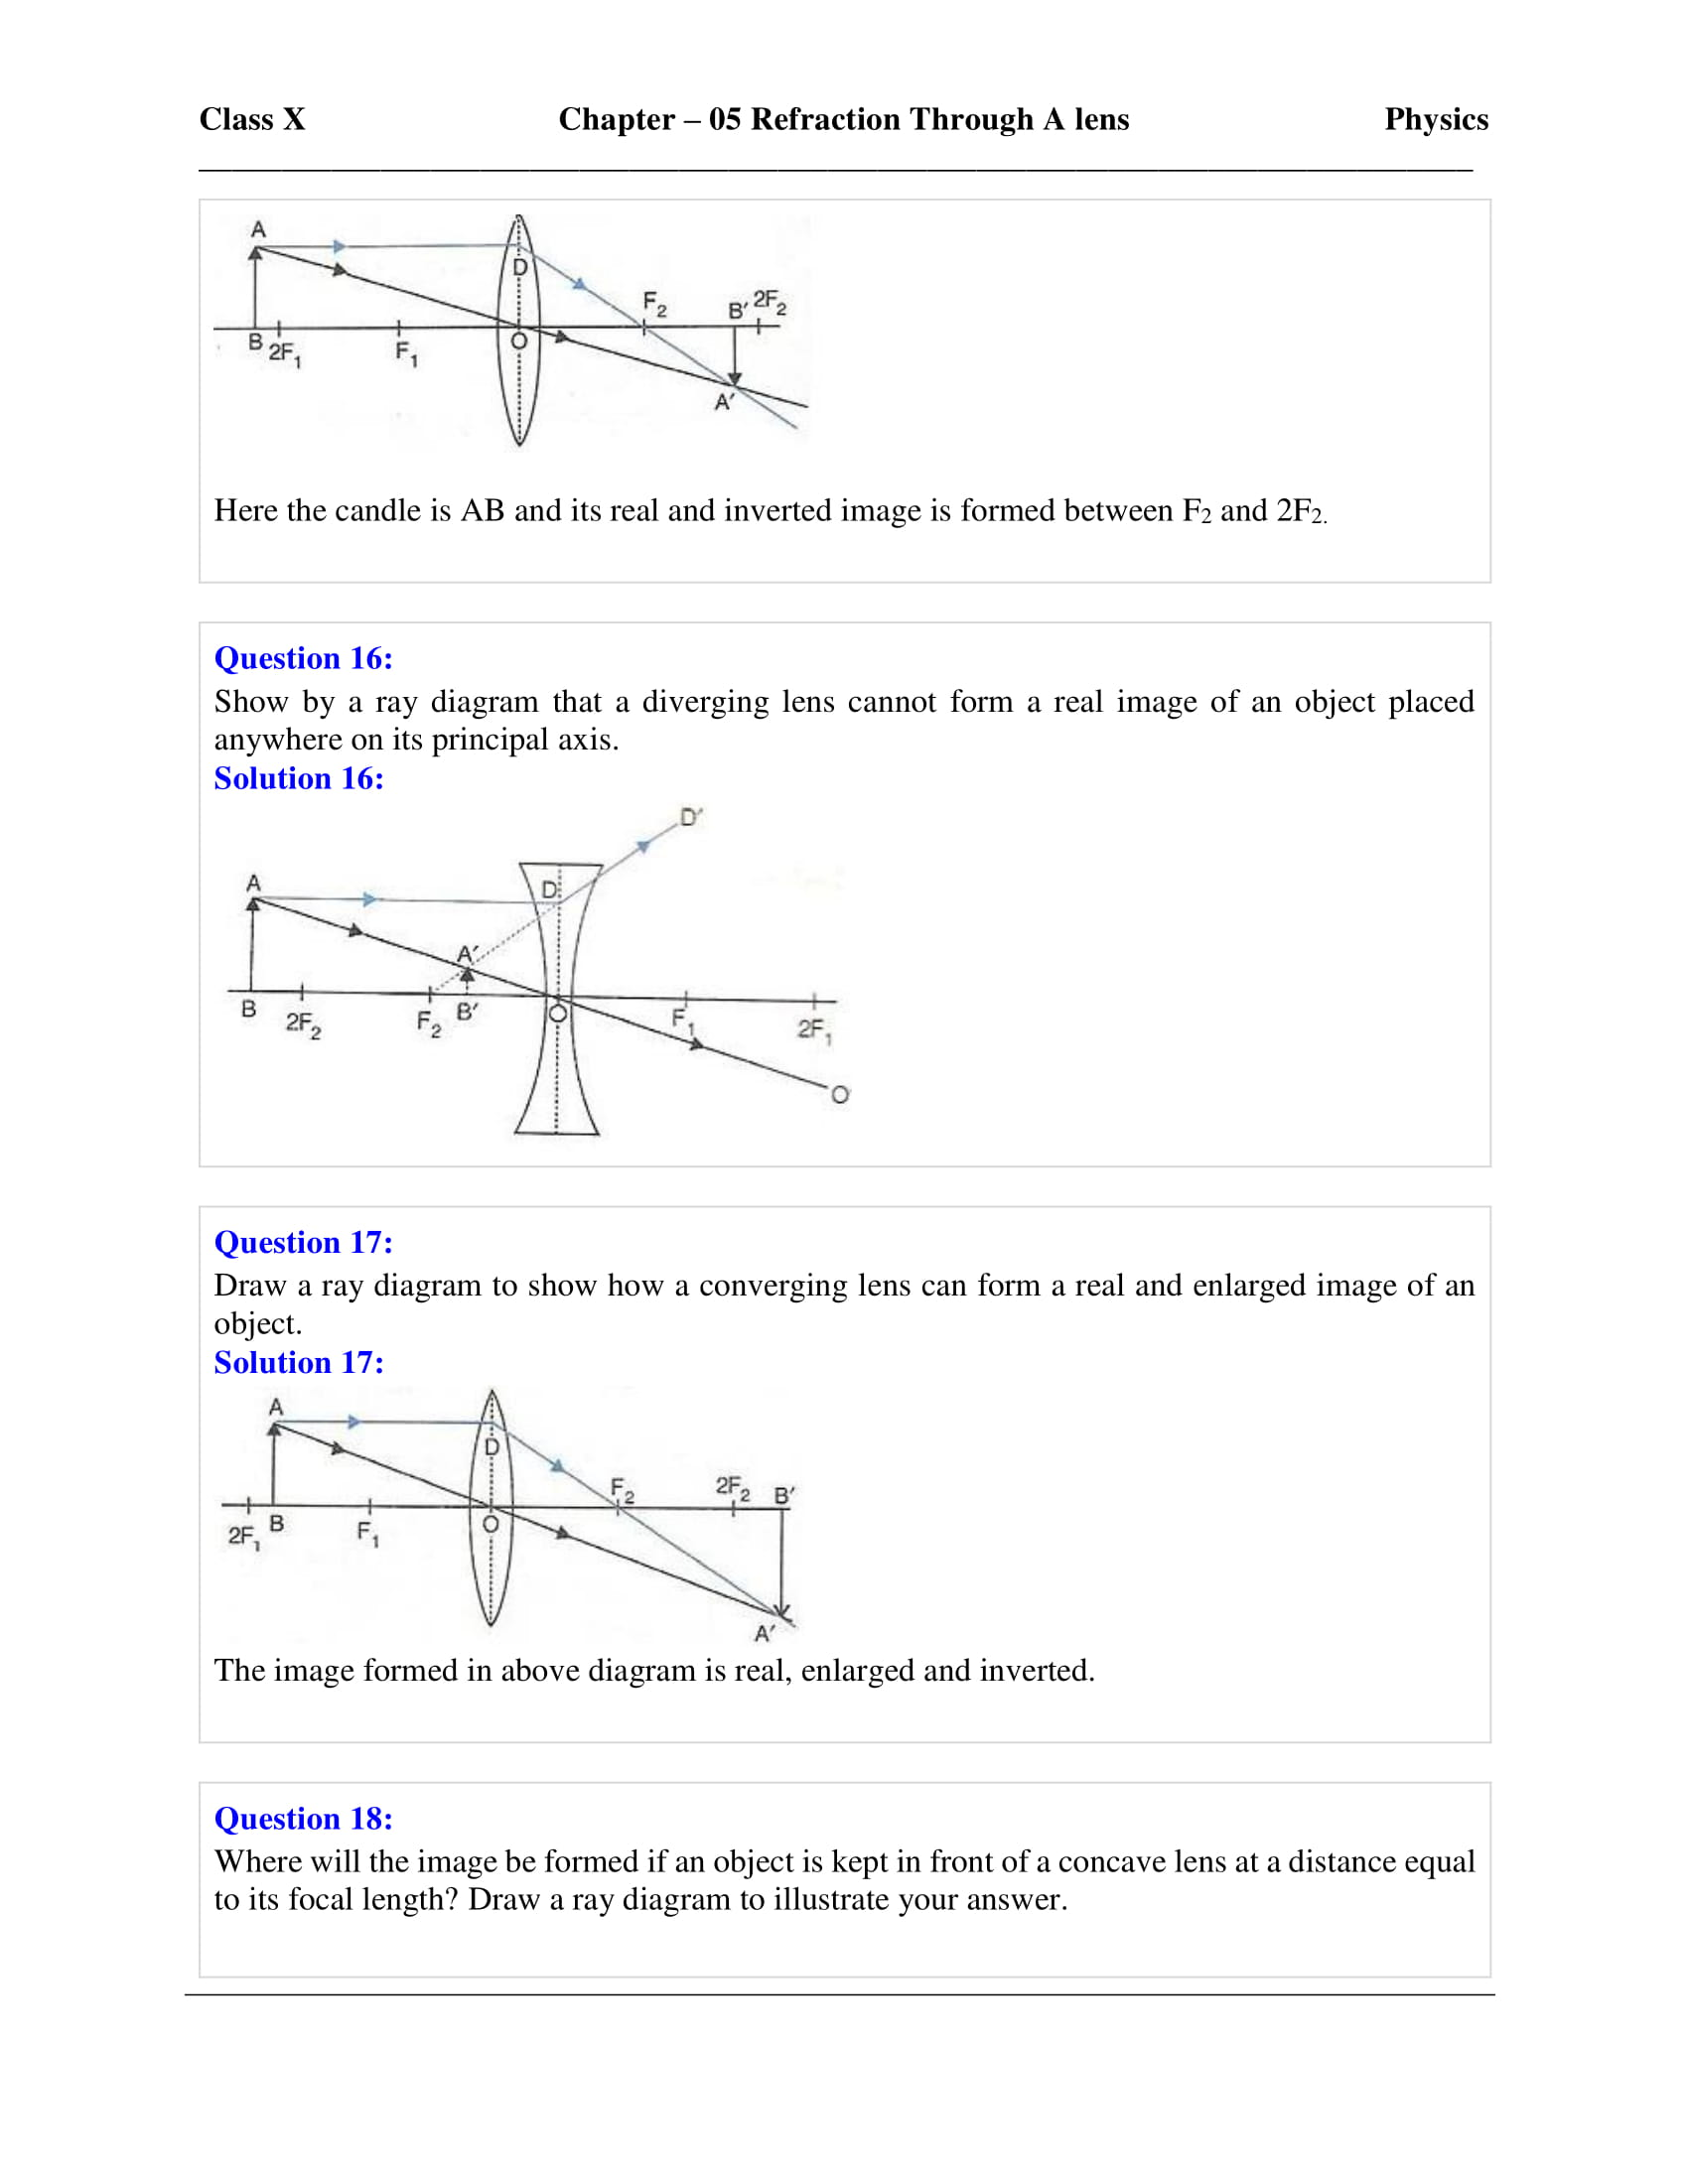 icse-selina-physics-solutions-class-10-chapter-5-refraction-through-a-lens-24